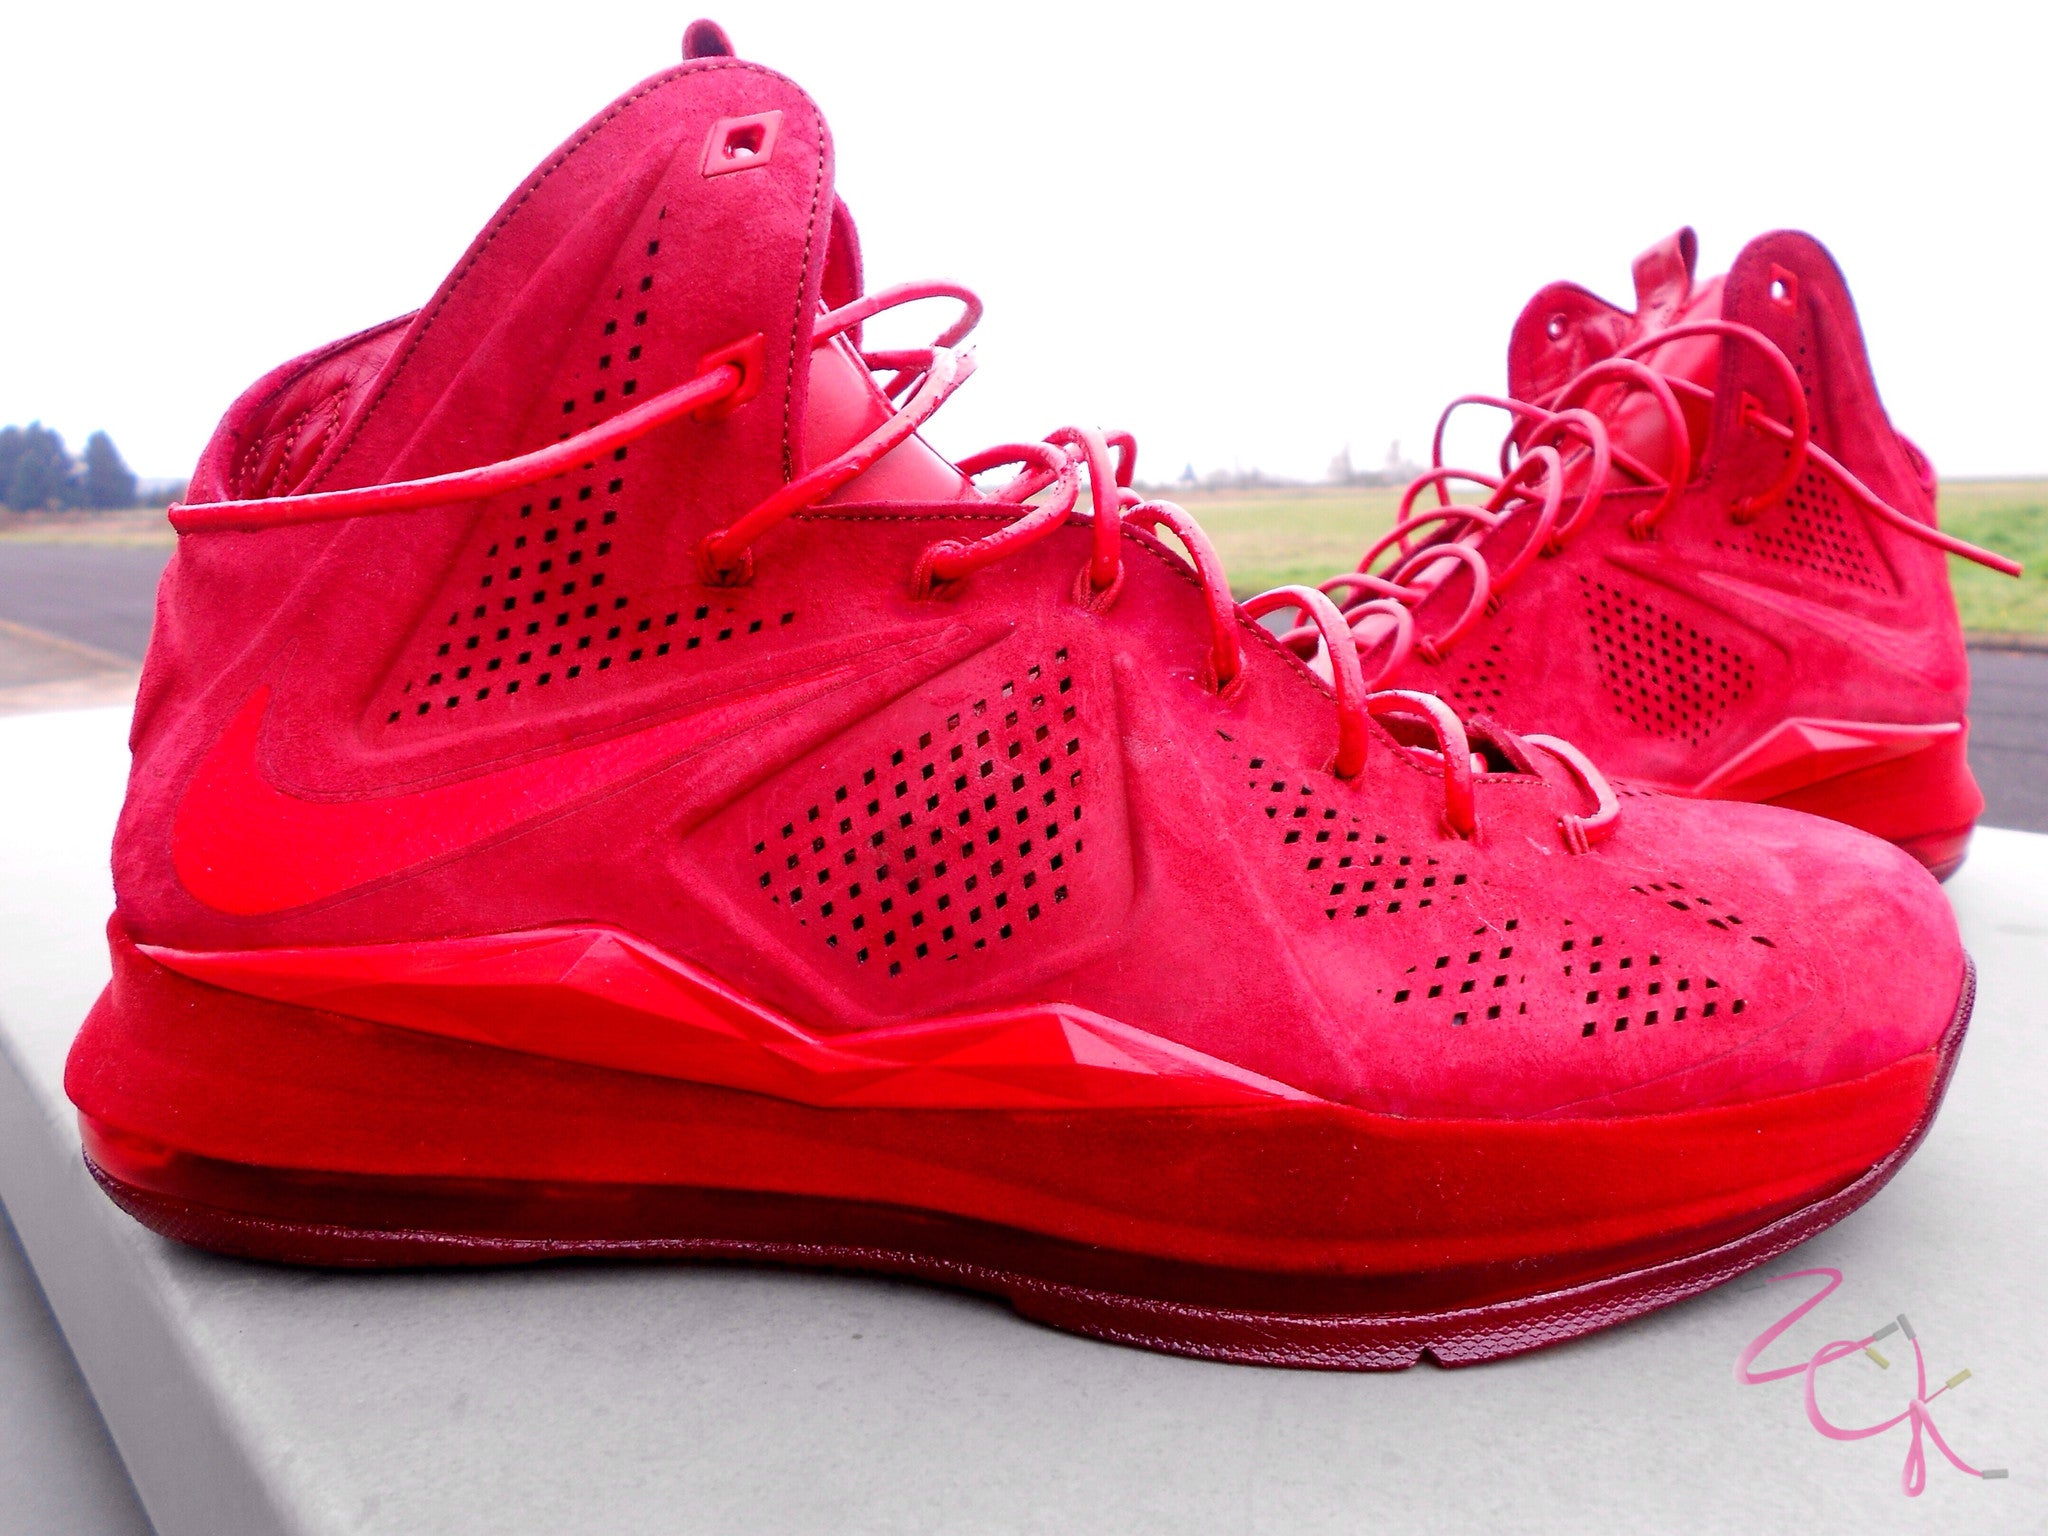 new style b0a4b 8c3f6 Custom Nike Lebron Suede EXT Red October   Zadehkicks